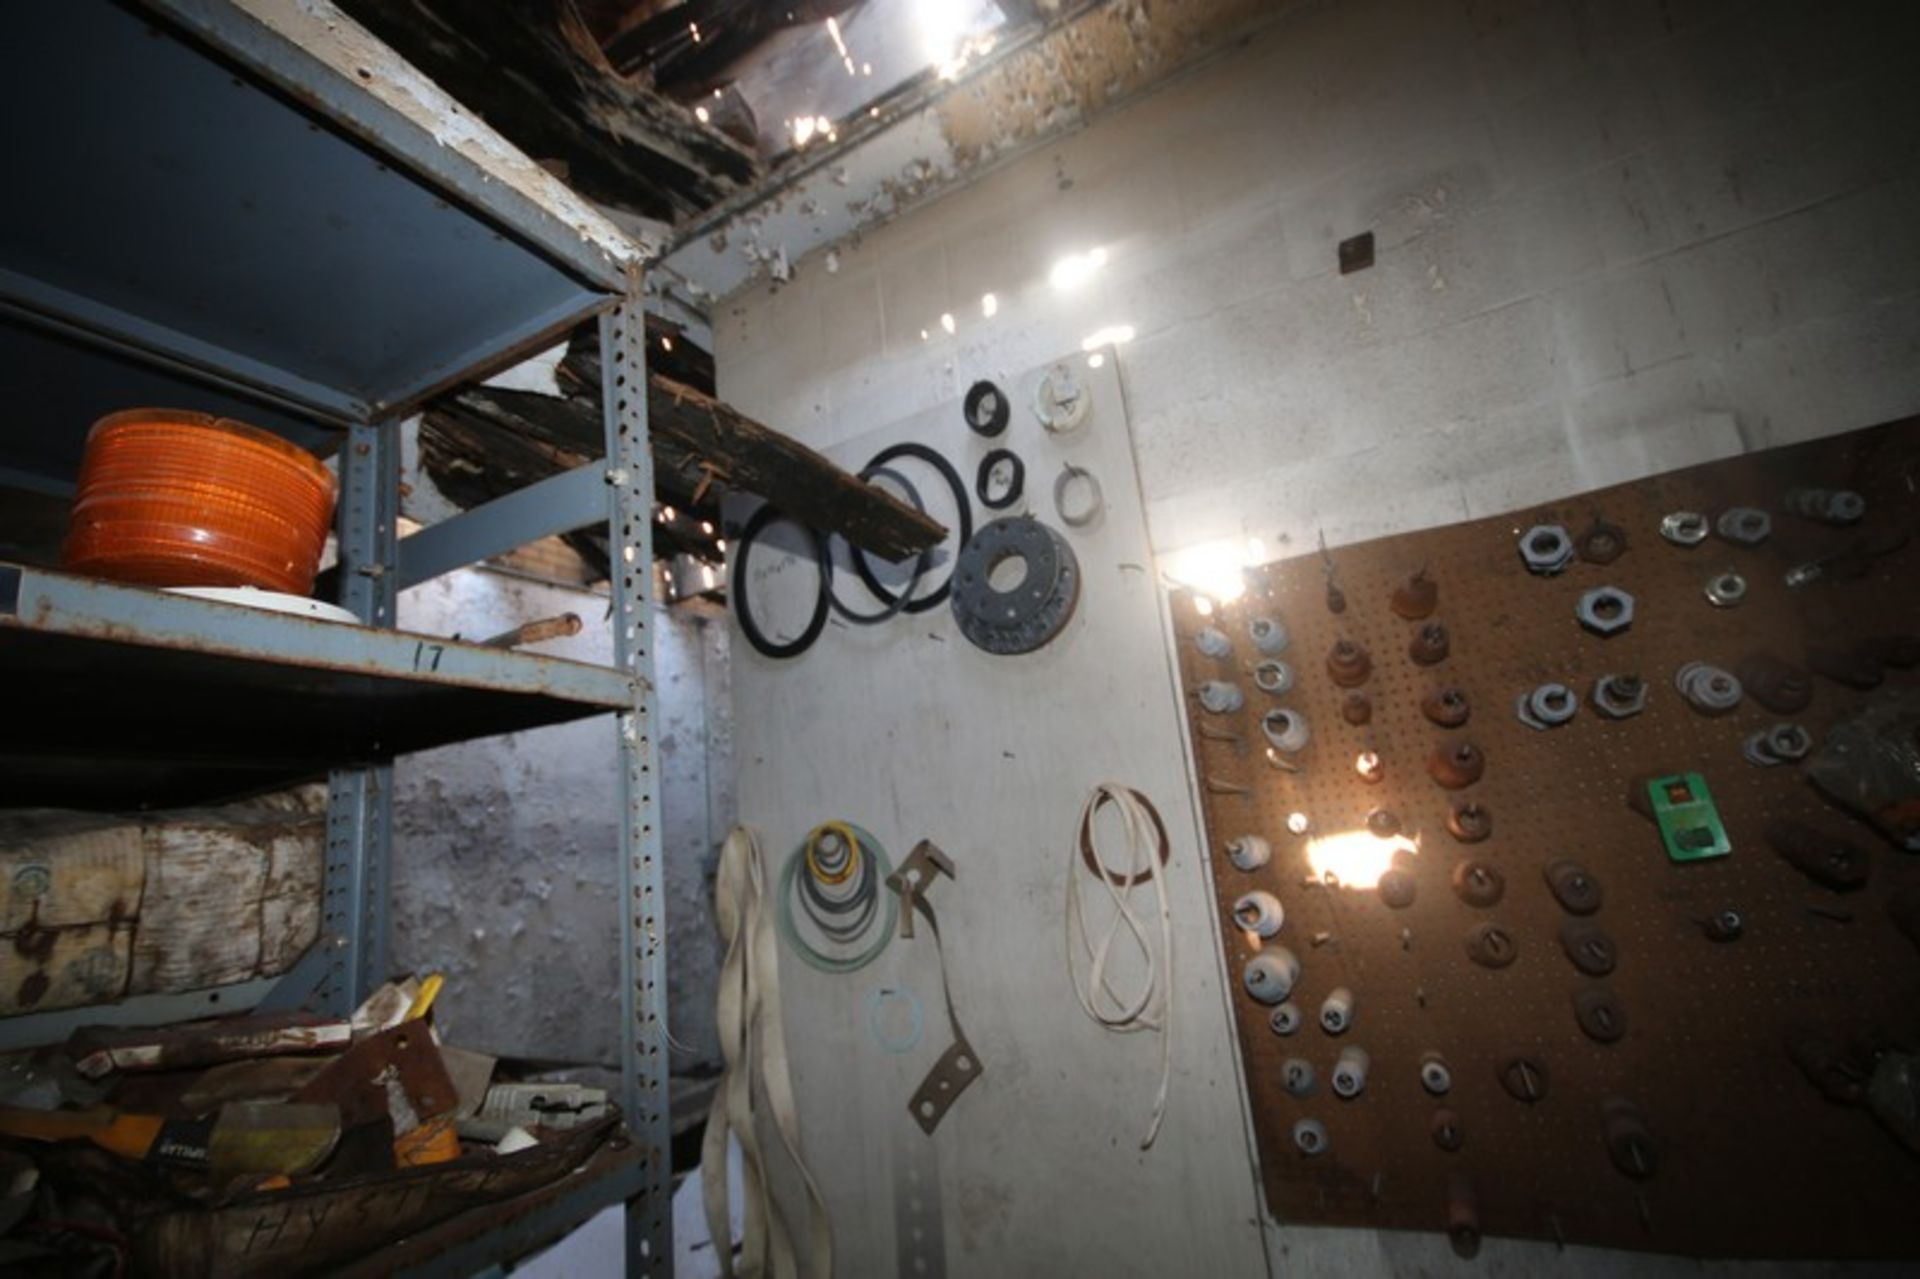 Contents of Parts Room, Includes Bearings, Stainless Steel Pipe, Motors, Belts, Electrical Wire, - Image 14 of 22